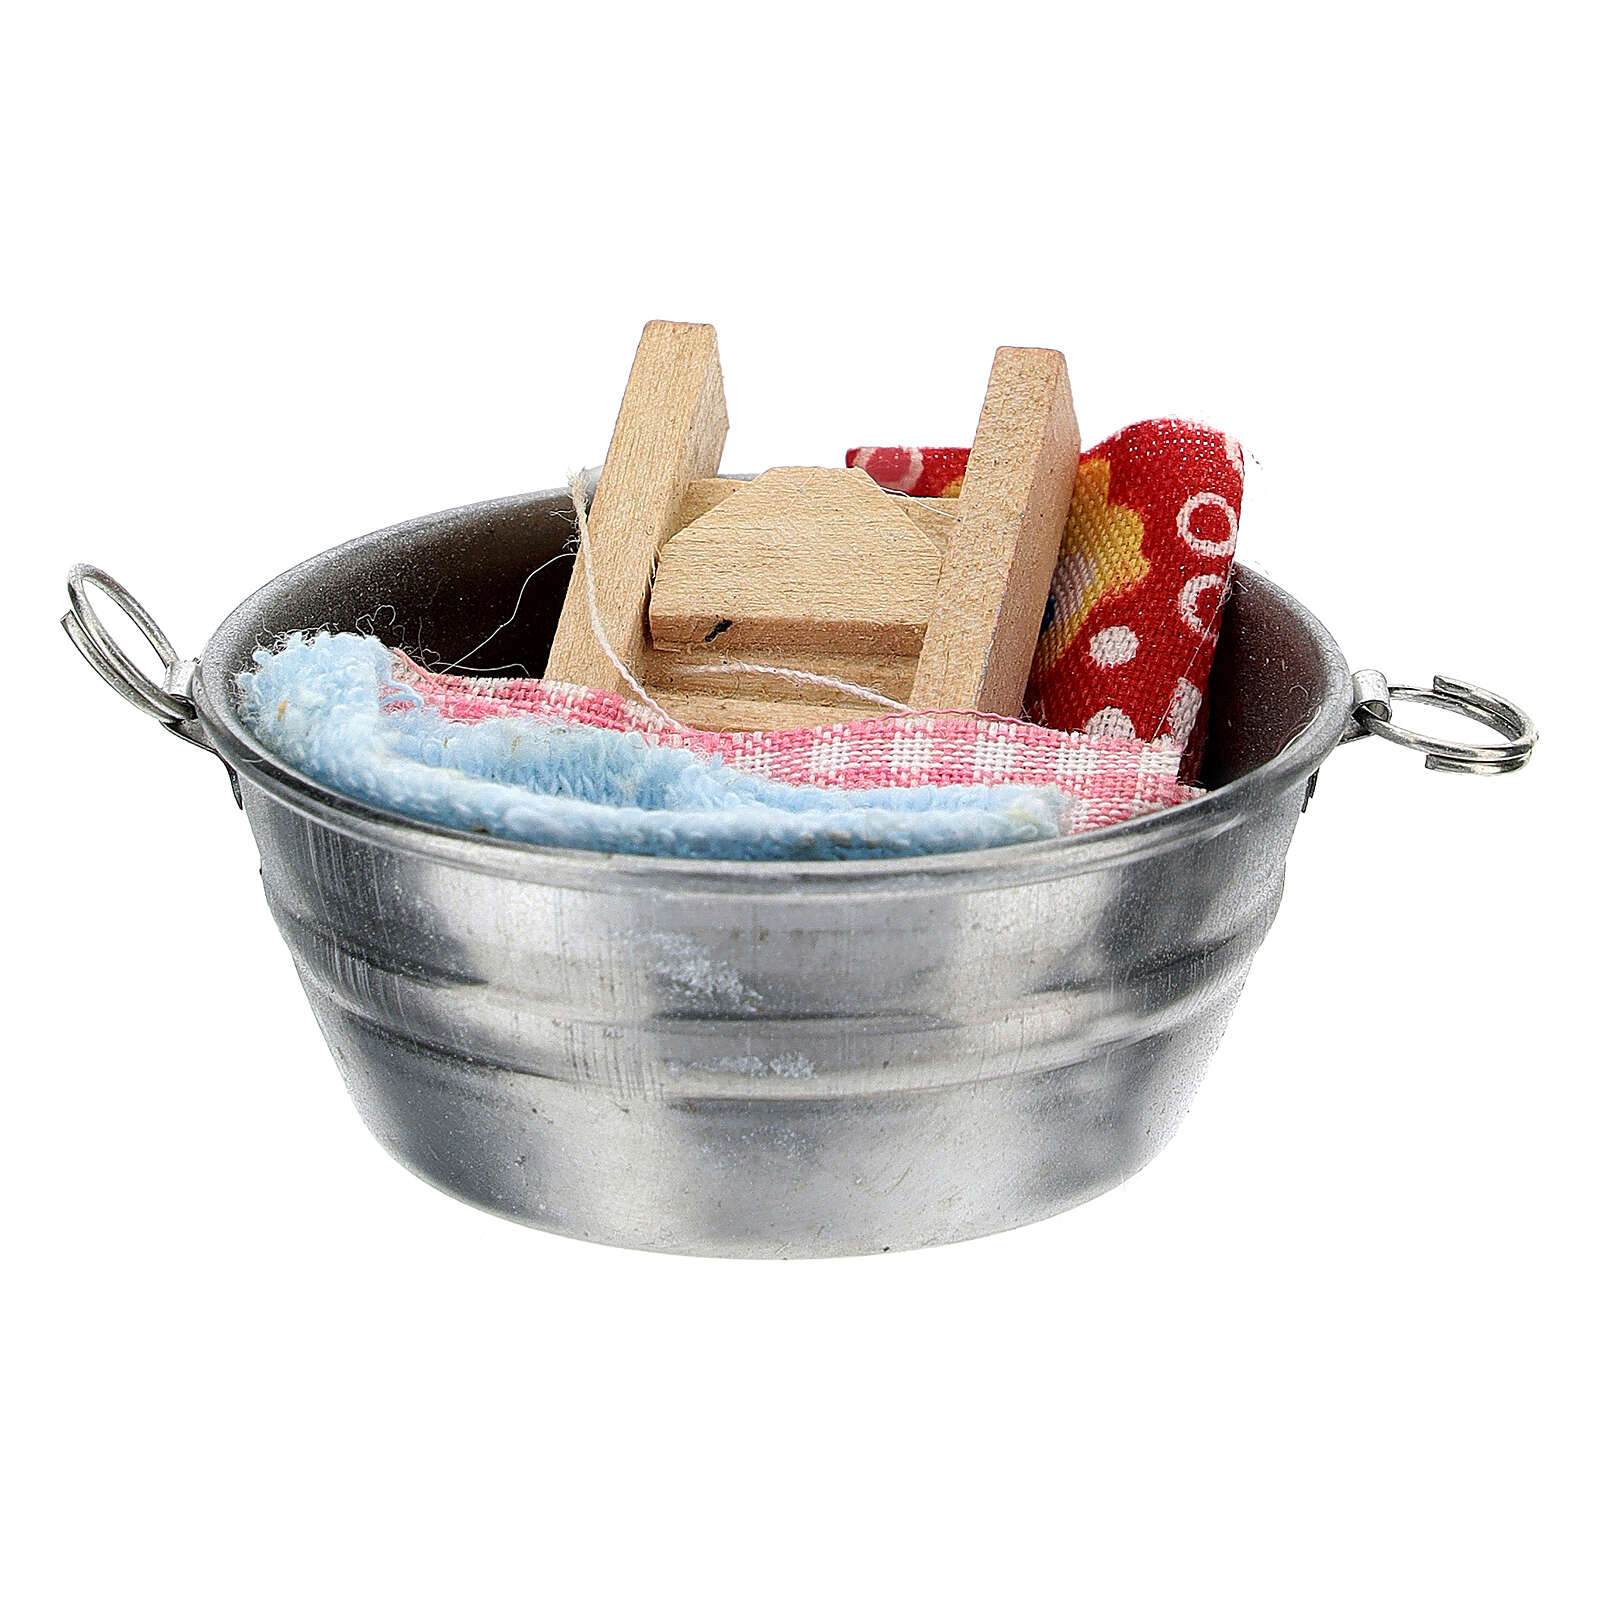 Tub with clothes Nativity scene 6-8 cm 4